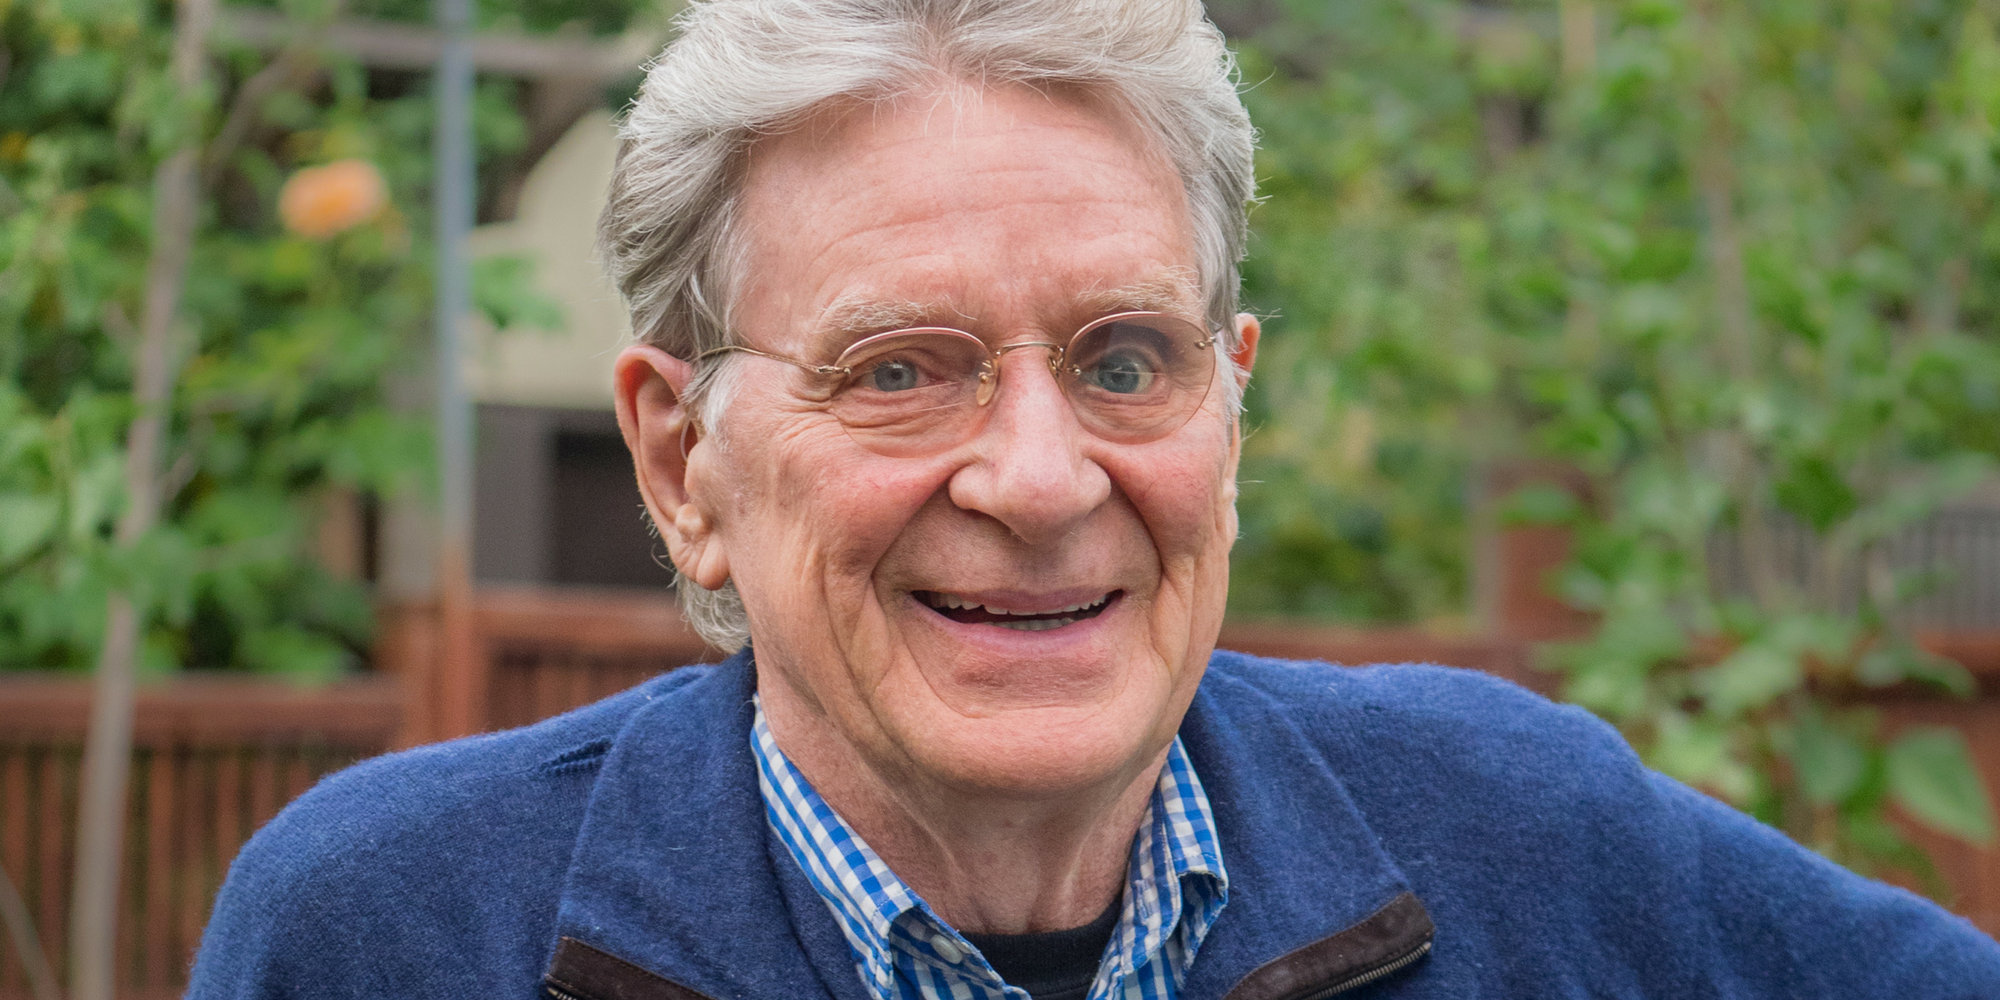 Robert-Thurman-Living-Buddhist-Ideals-in-a-Western-World..png